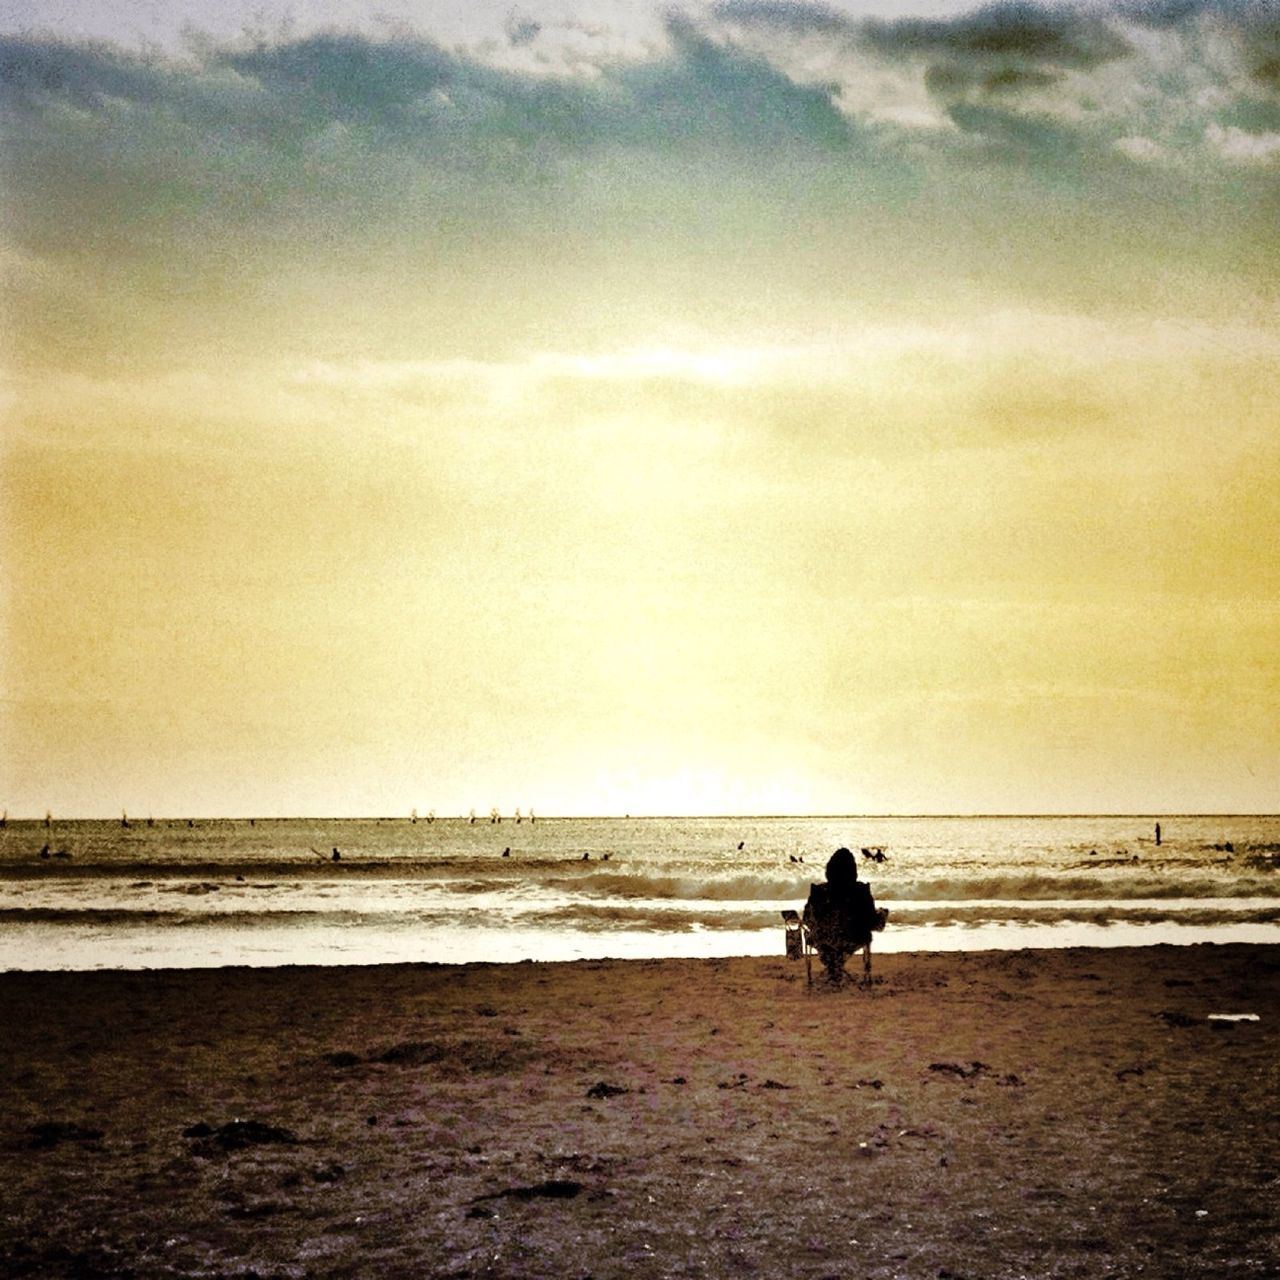 Lone person sitting on beach overlooking sea